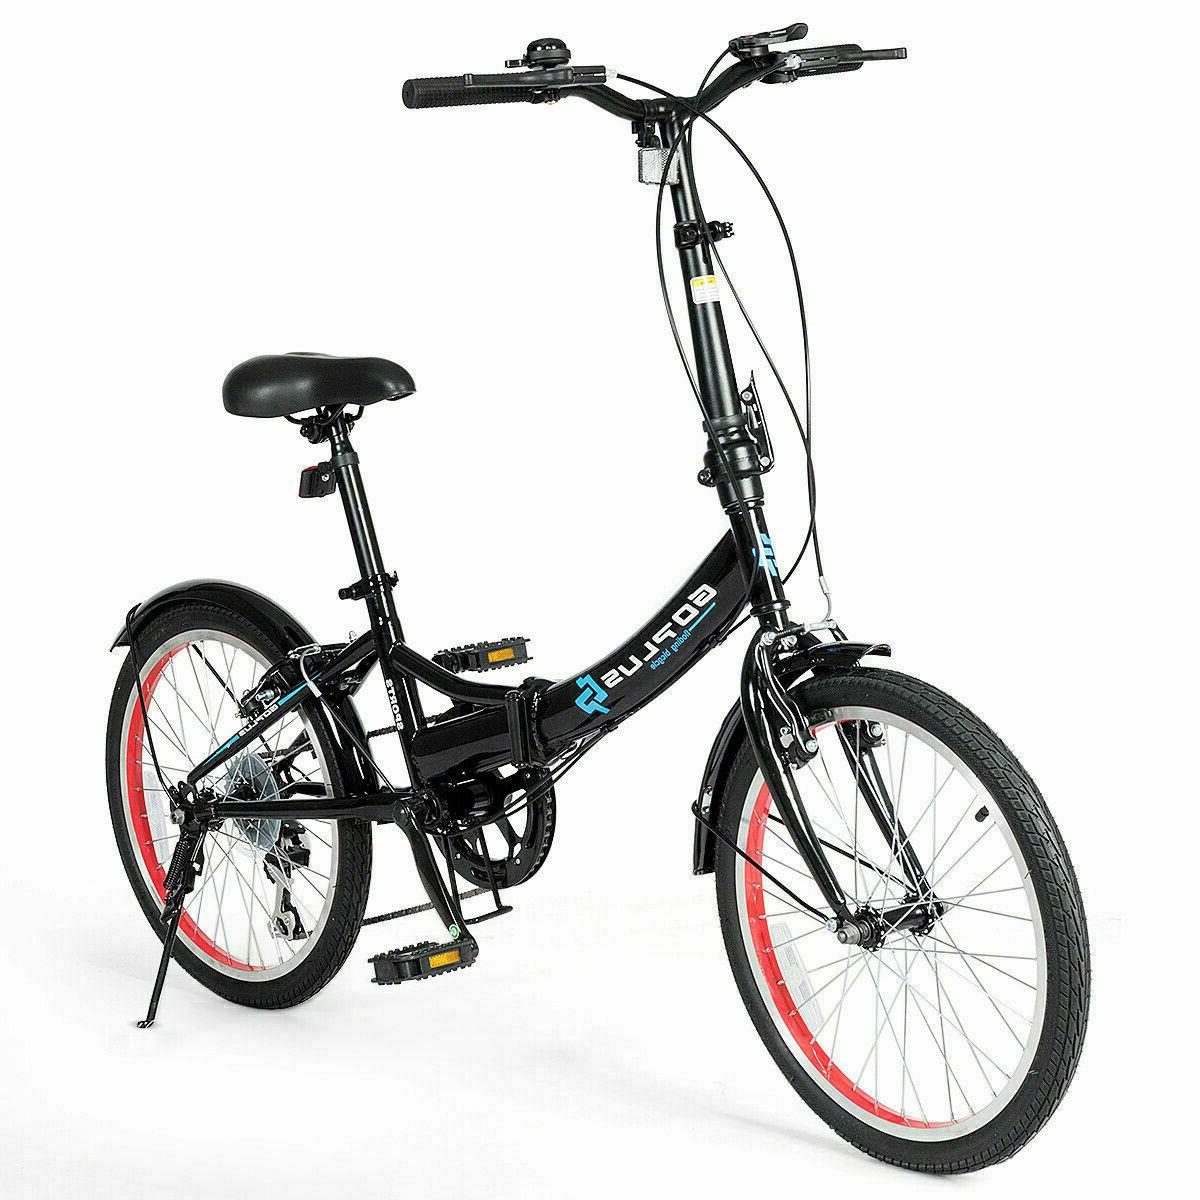 20 Inch Folding Bike for Adult Men and Women Teens, 7 Speed